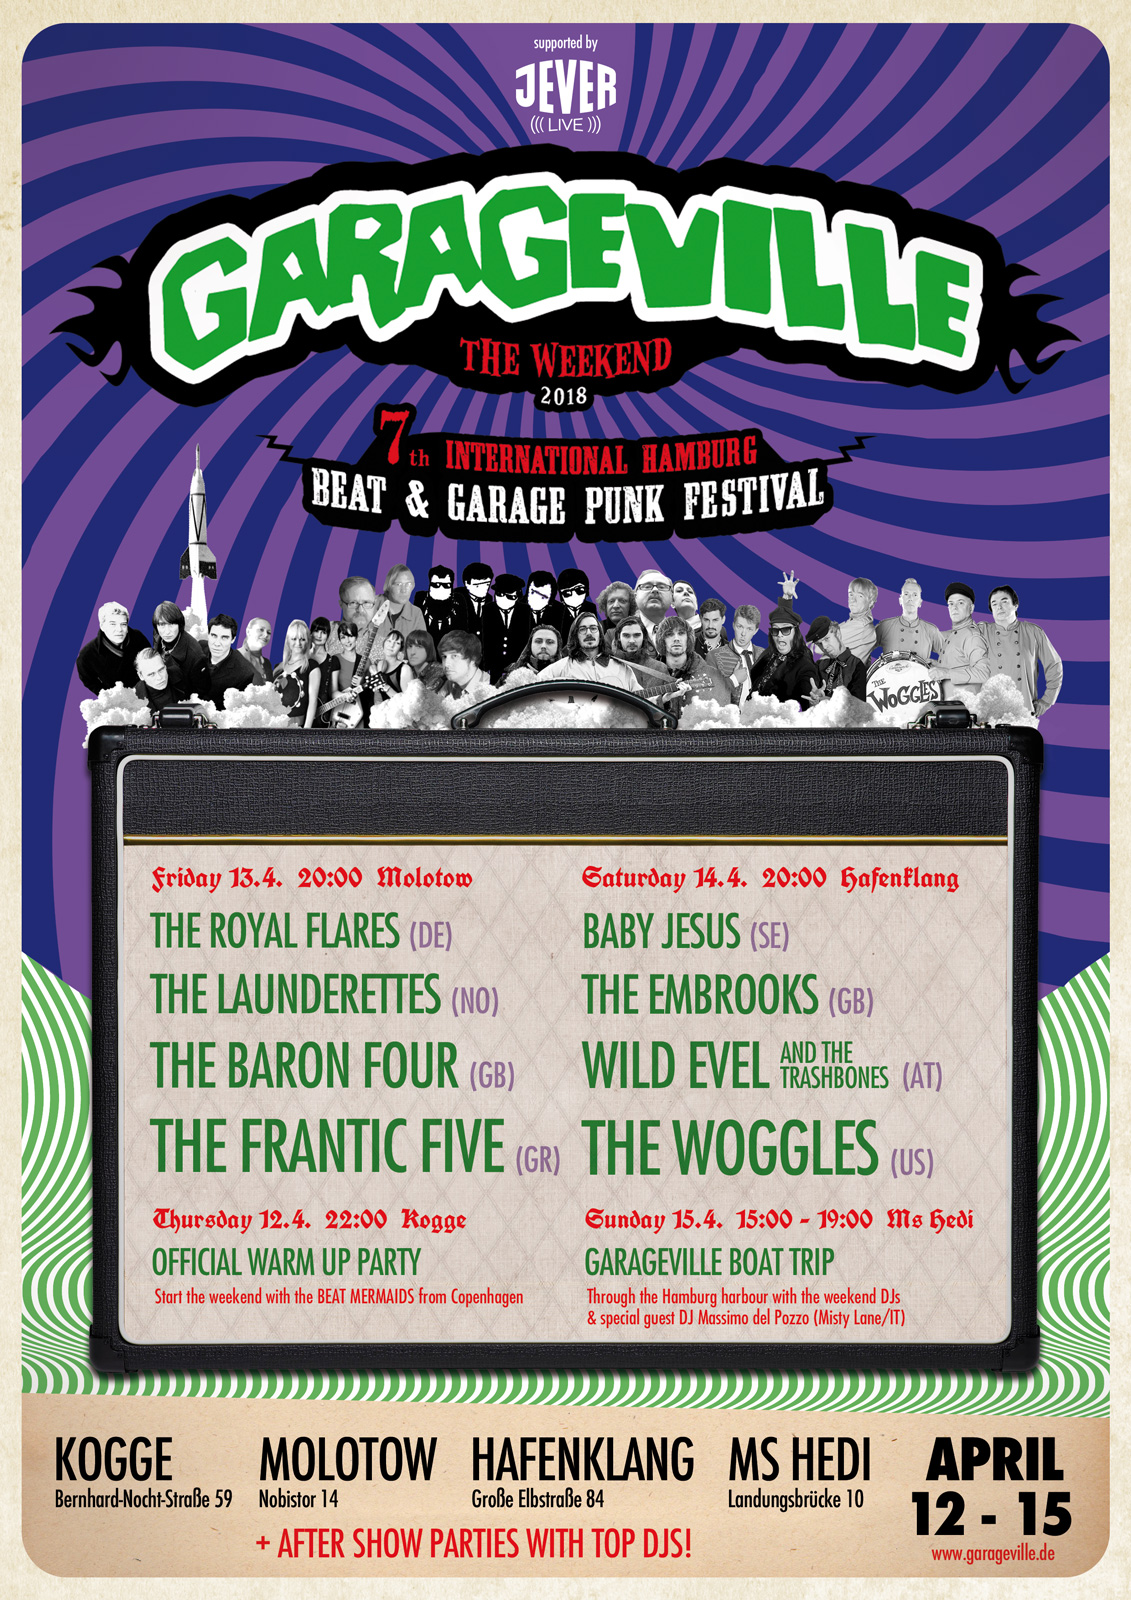 Preview: Garageville - The Weekend - 2018